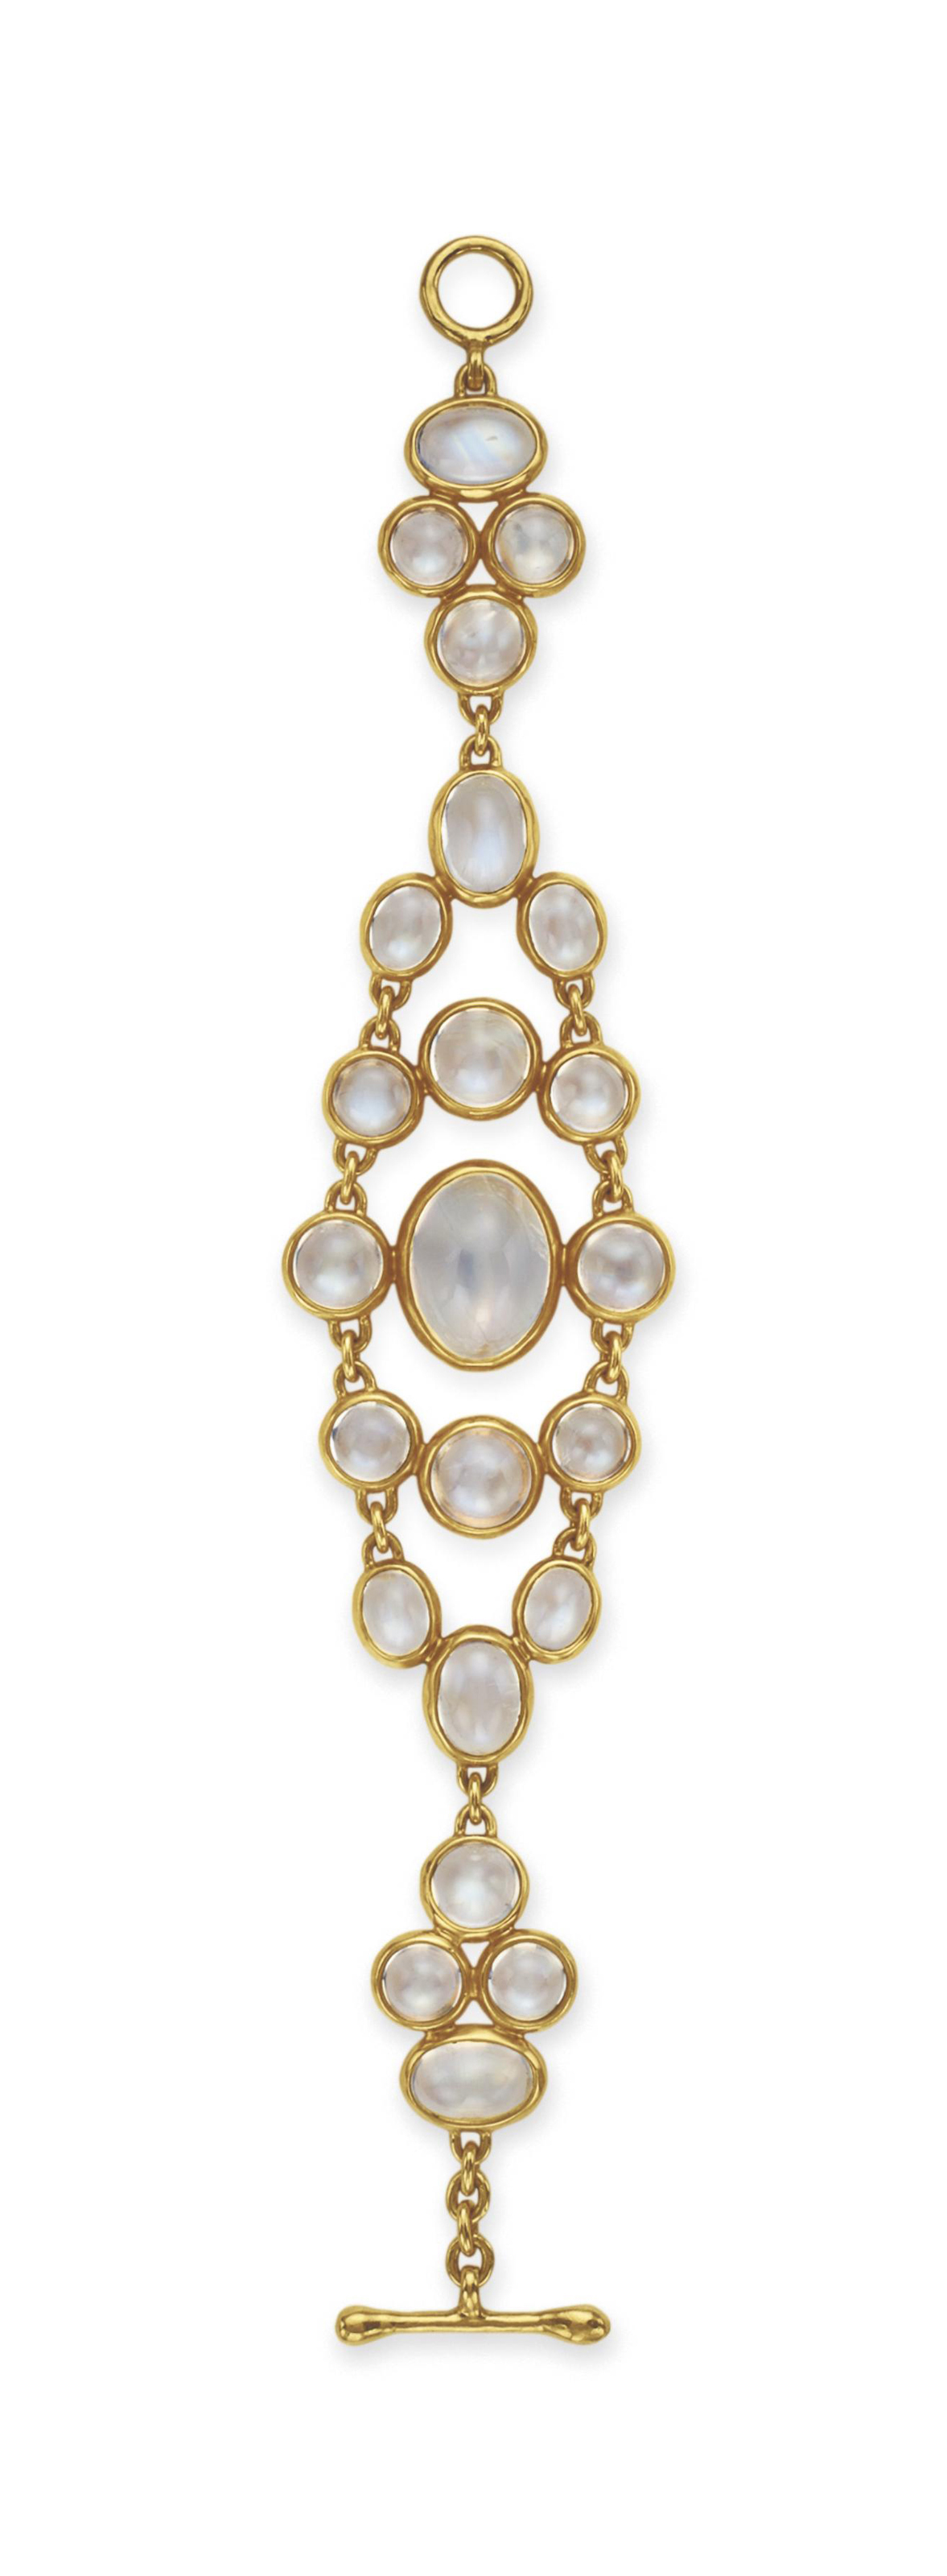 A MOONSTONE AND GOLD BRACELET,